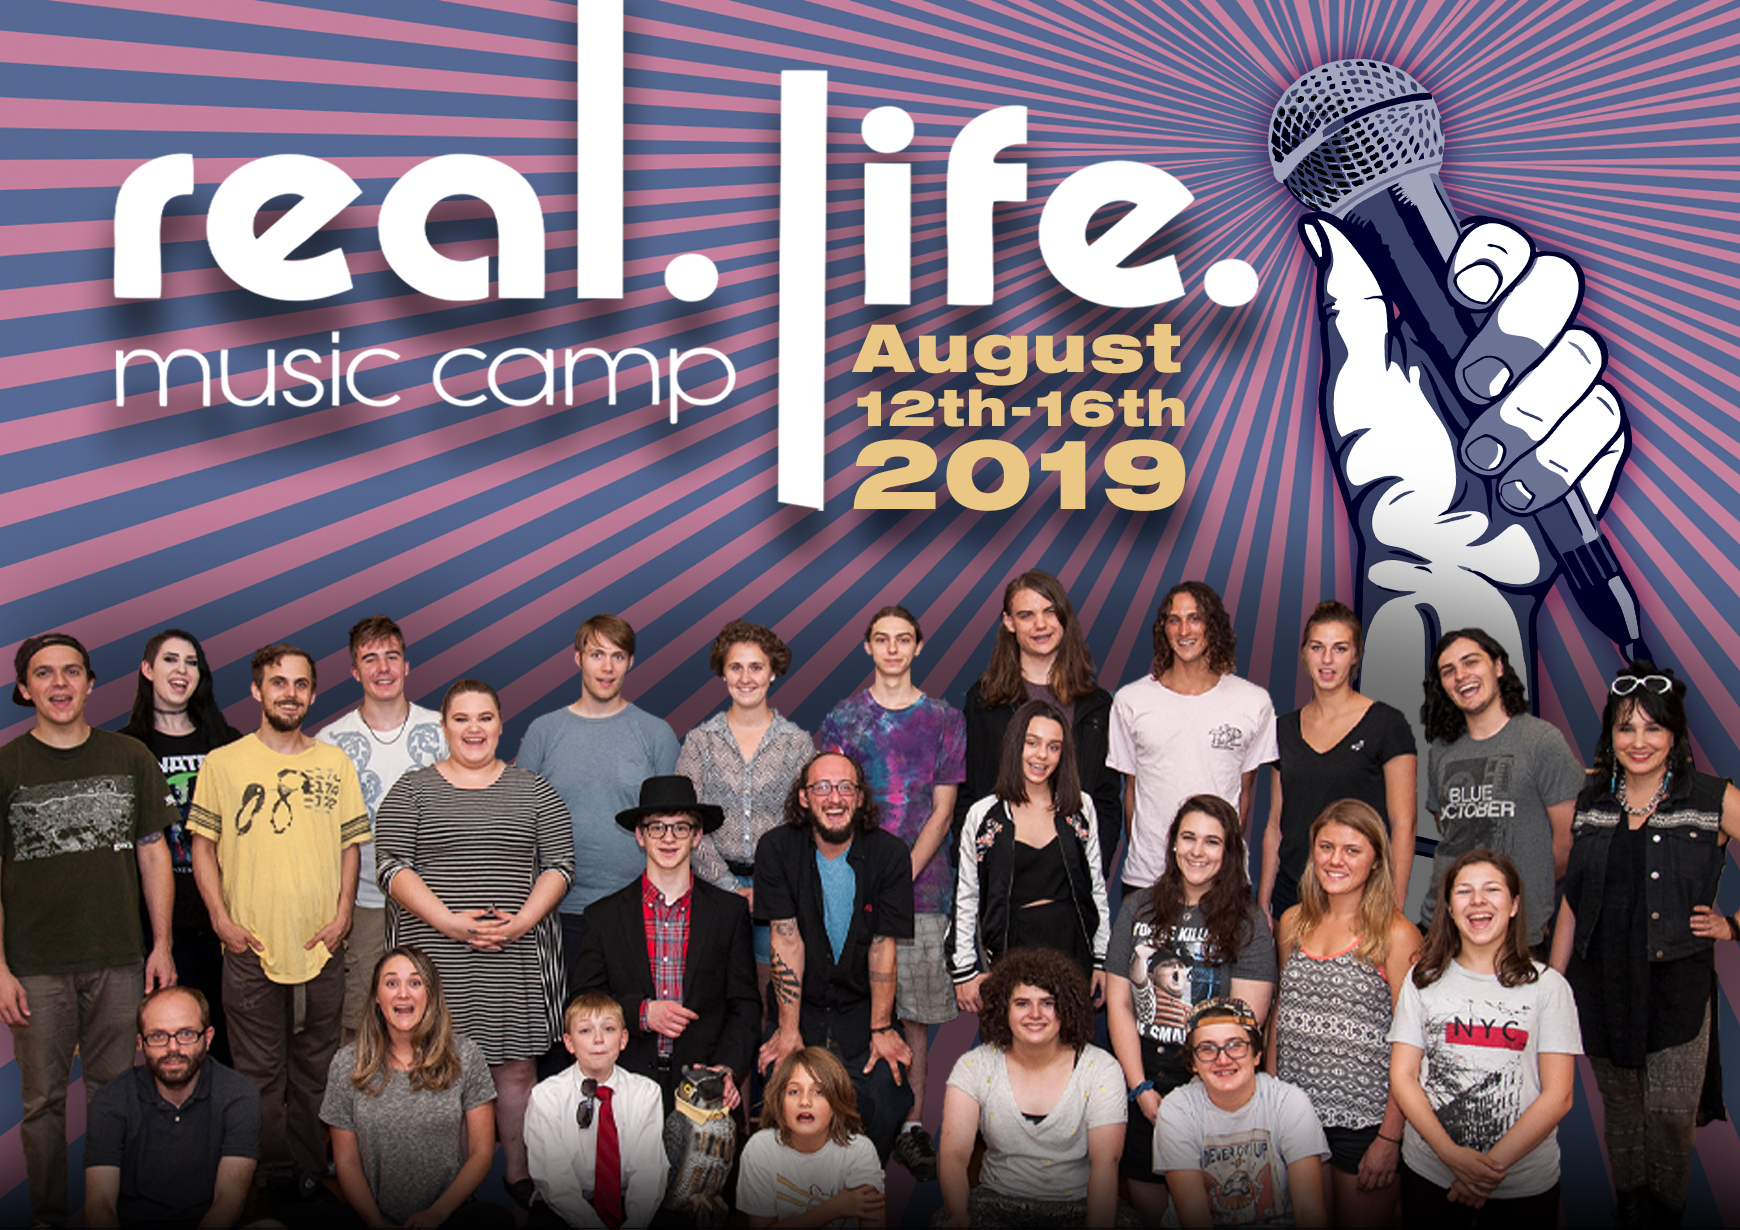 Real.Life.Music Camp